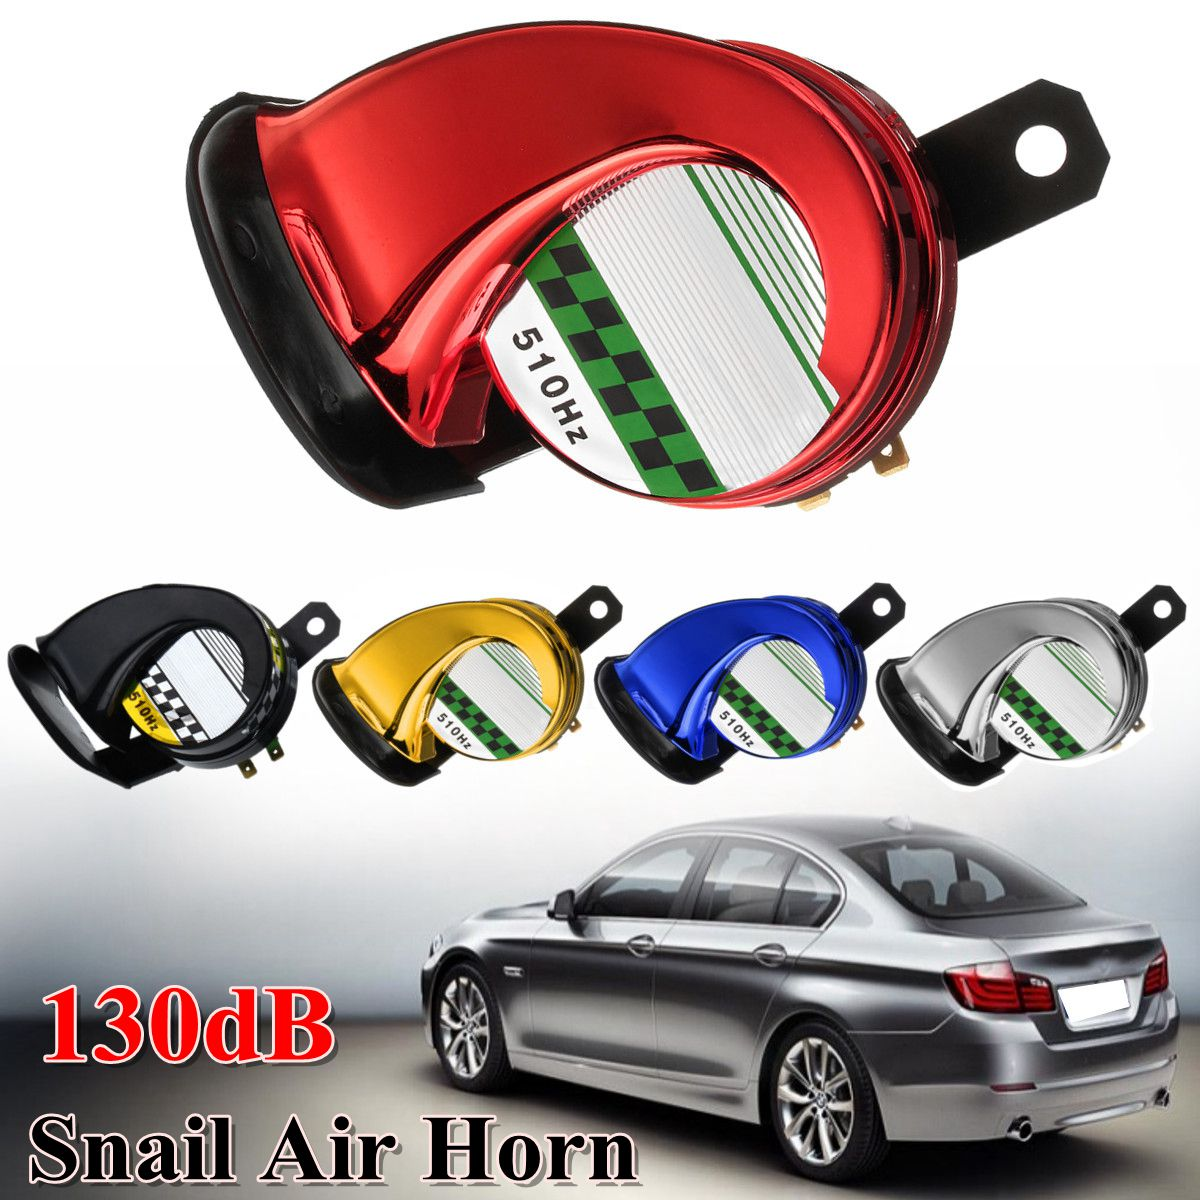 Universal 12V DC 130db Snail Air Motorcycle Horn Siren Loud For Car Truck Motorbike Waterproof